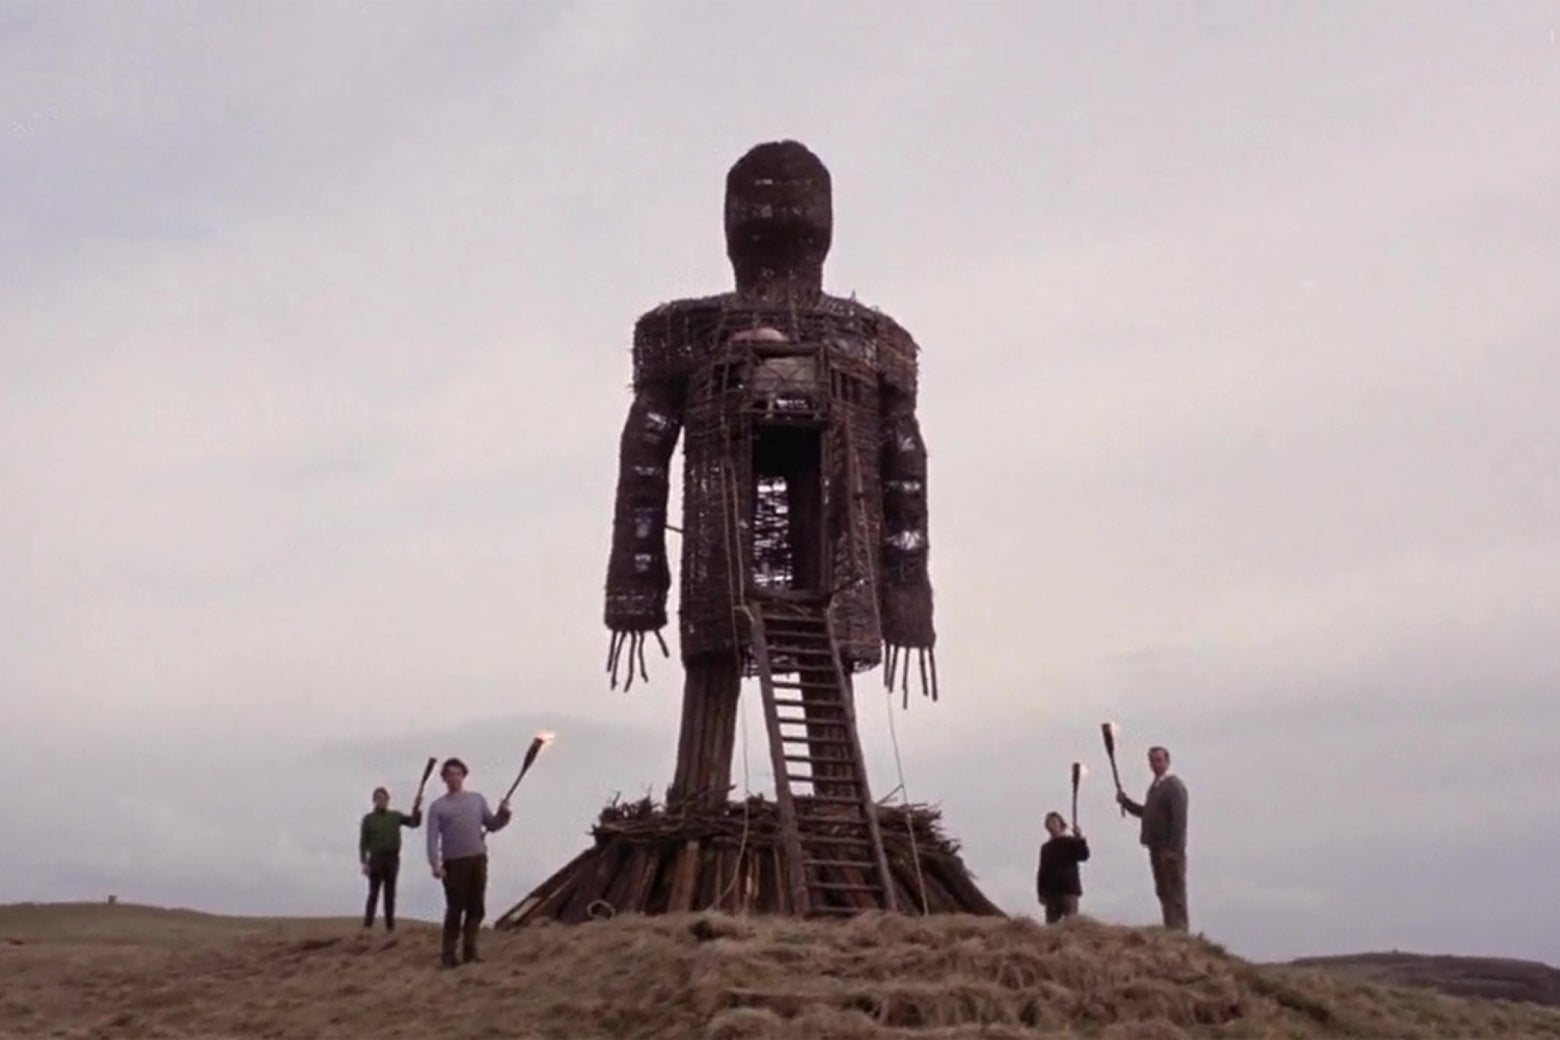 The Wicker Man from The Wicker Man.